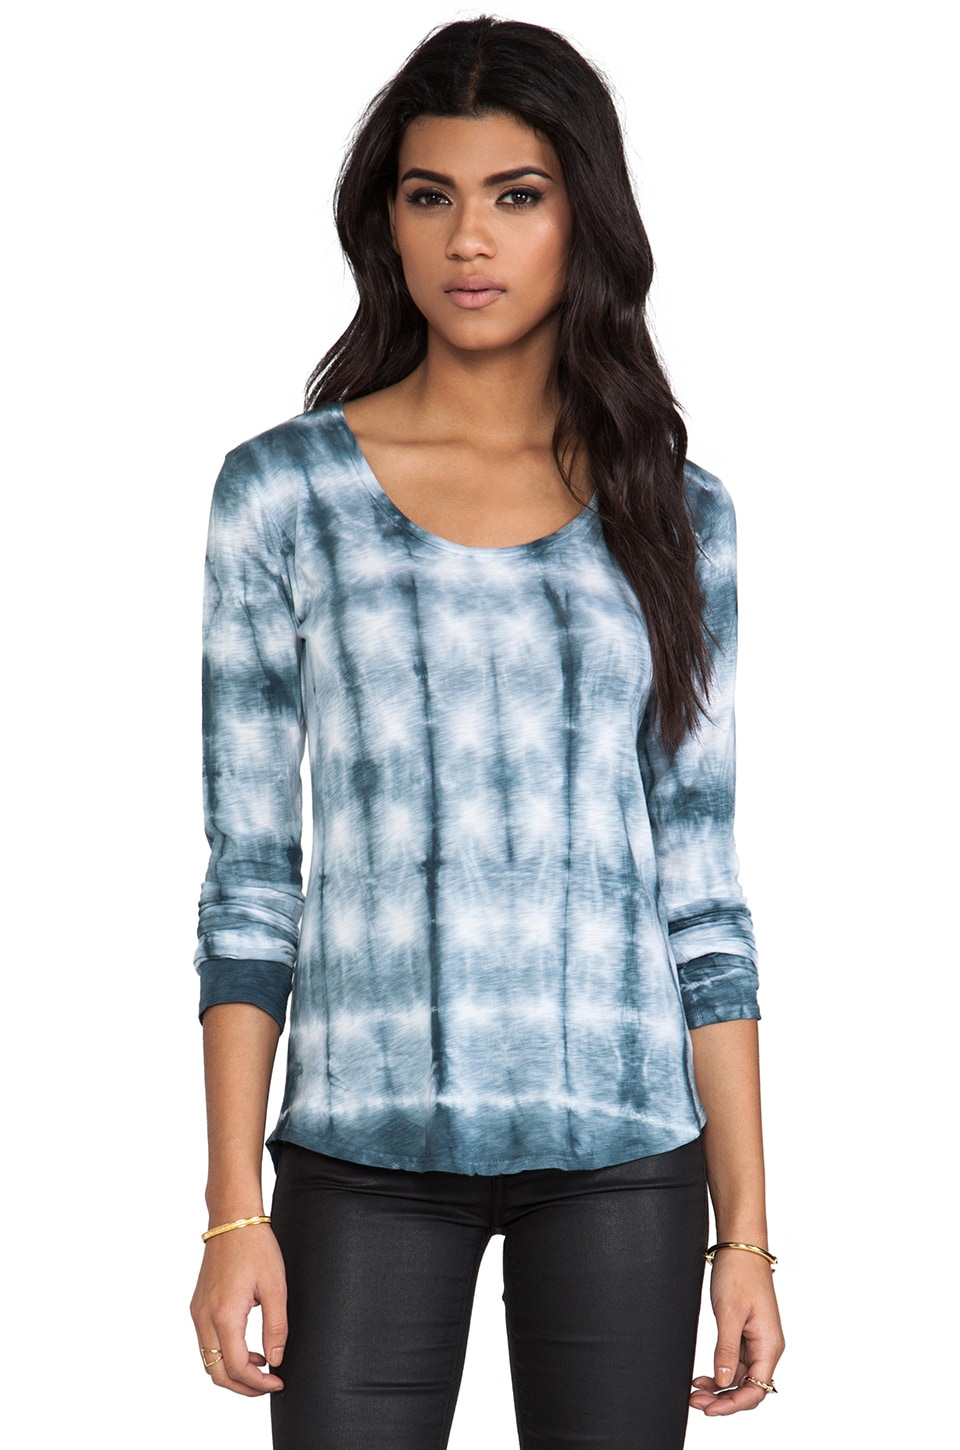 Velvet by Graham & Spencer Velvet Tie Dye Luxe Pond Top in Pond